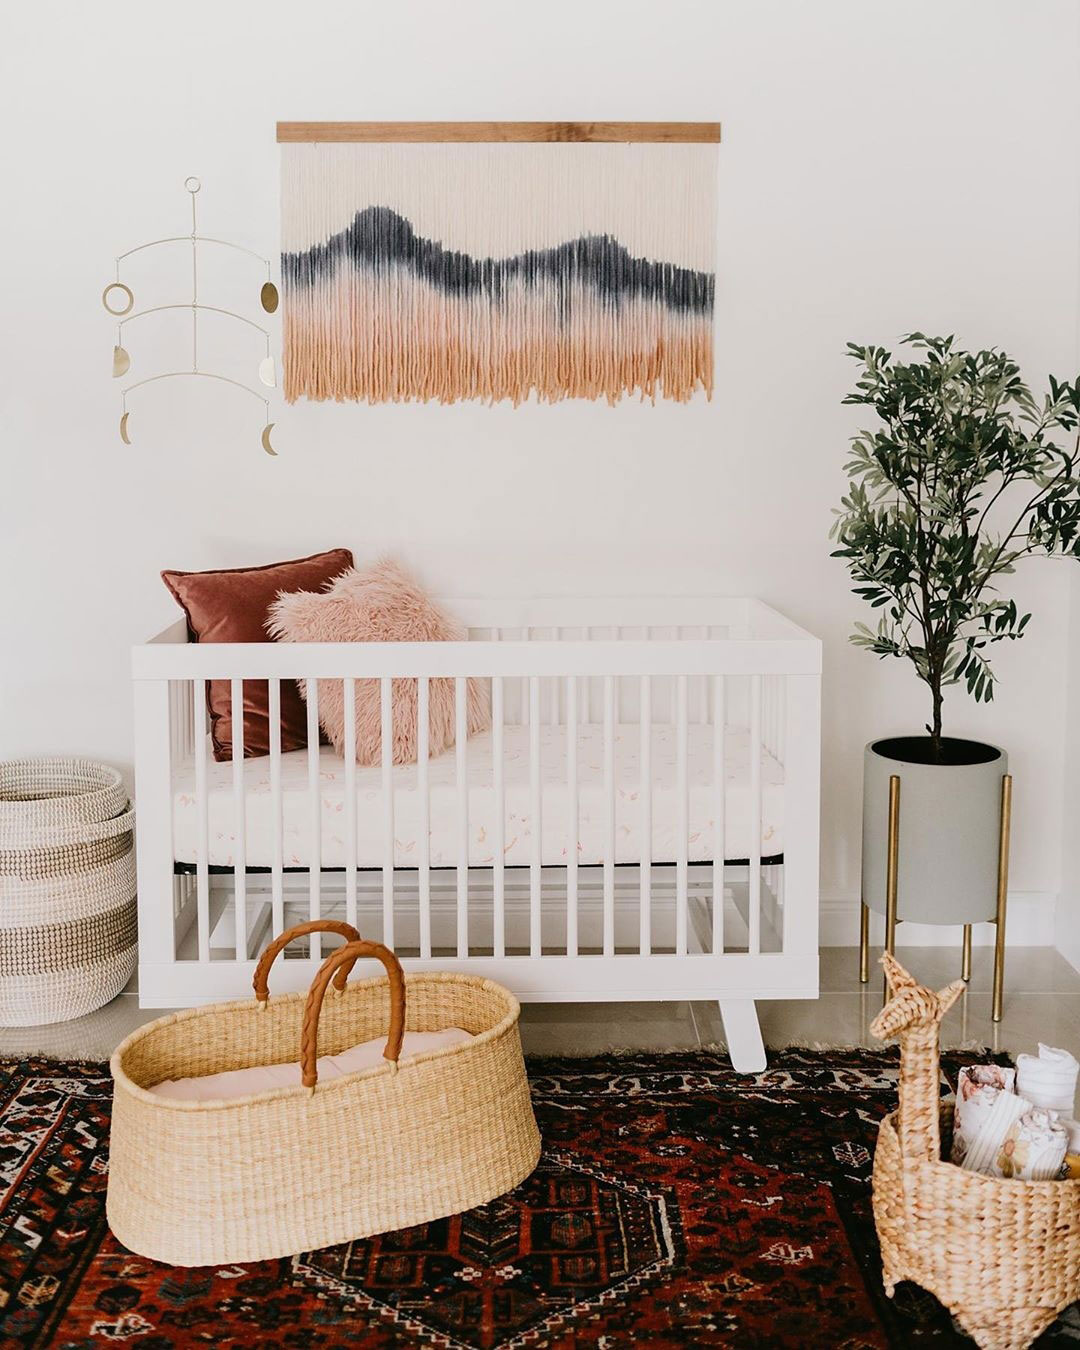 tye dye wall hanging nursery